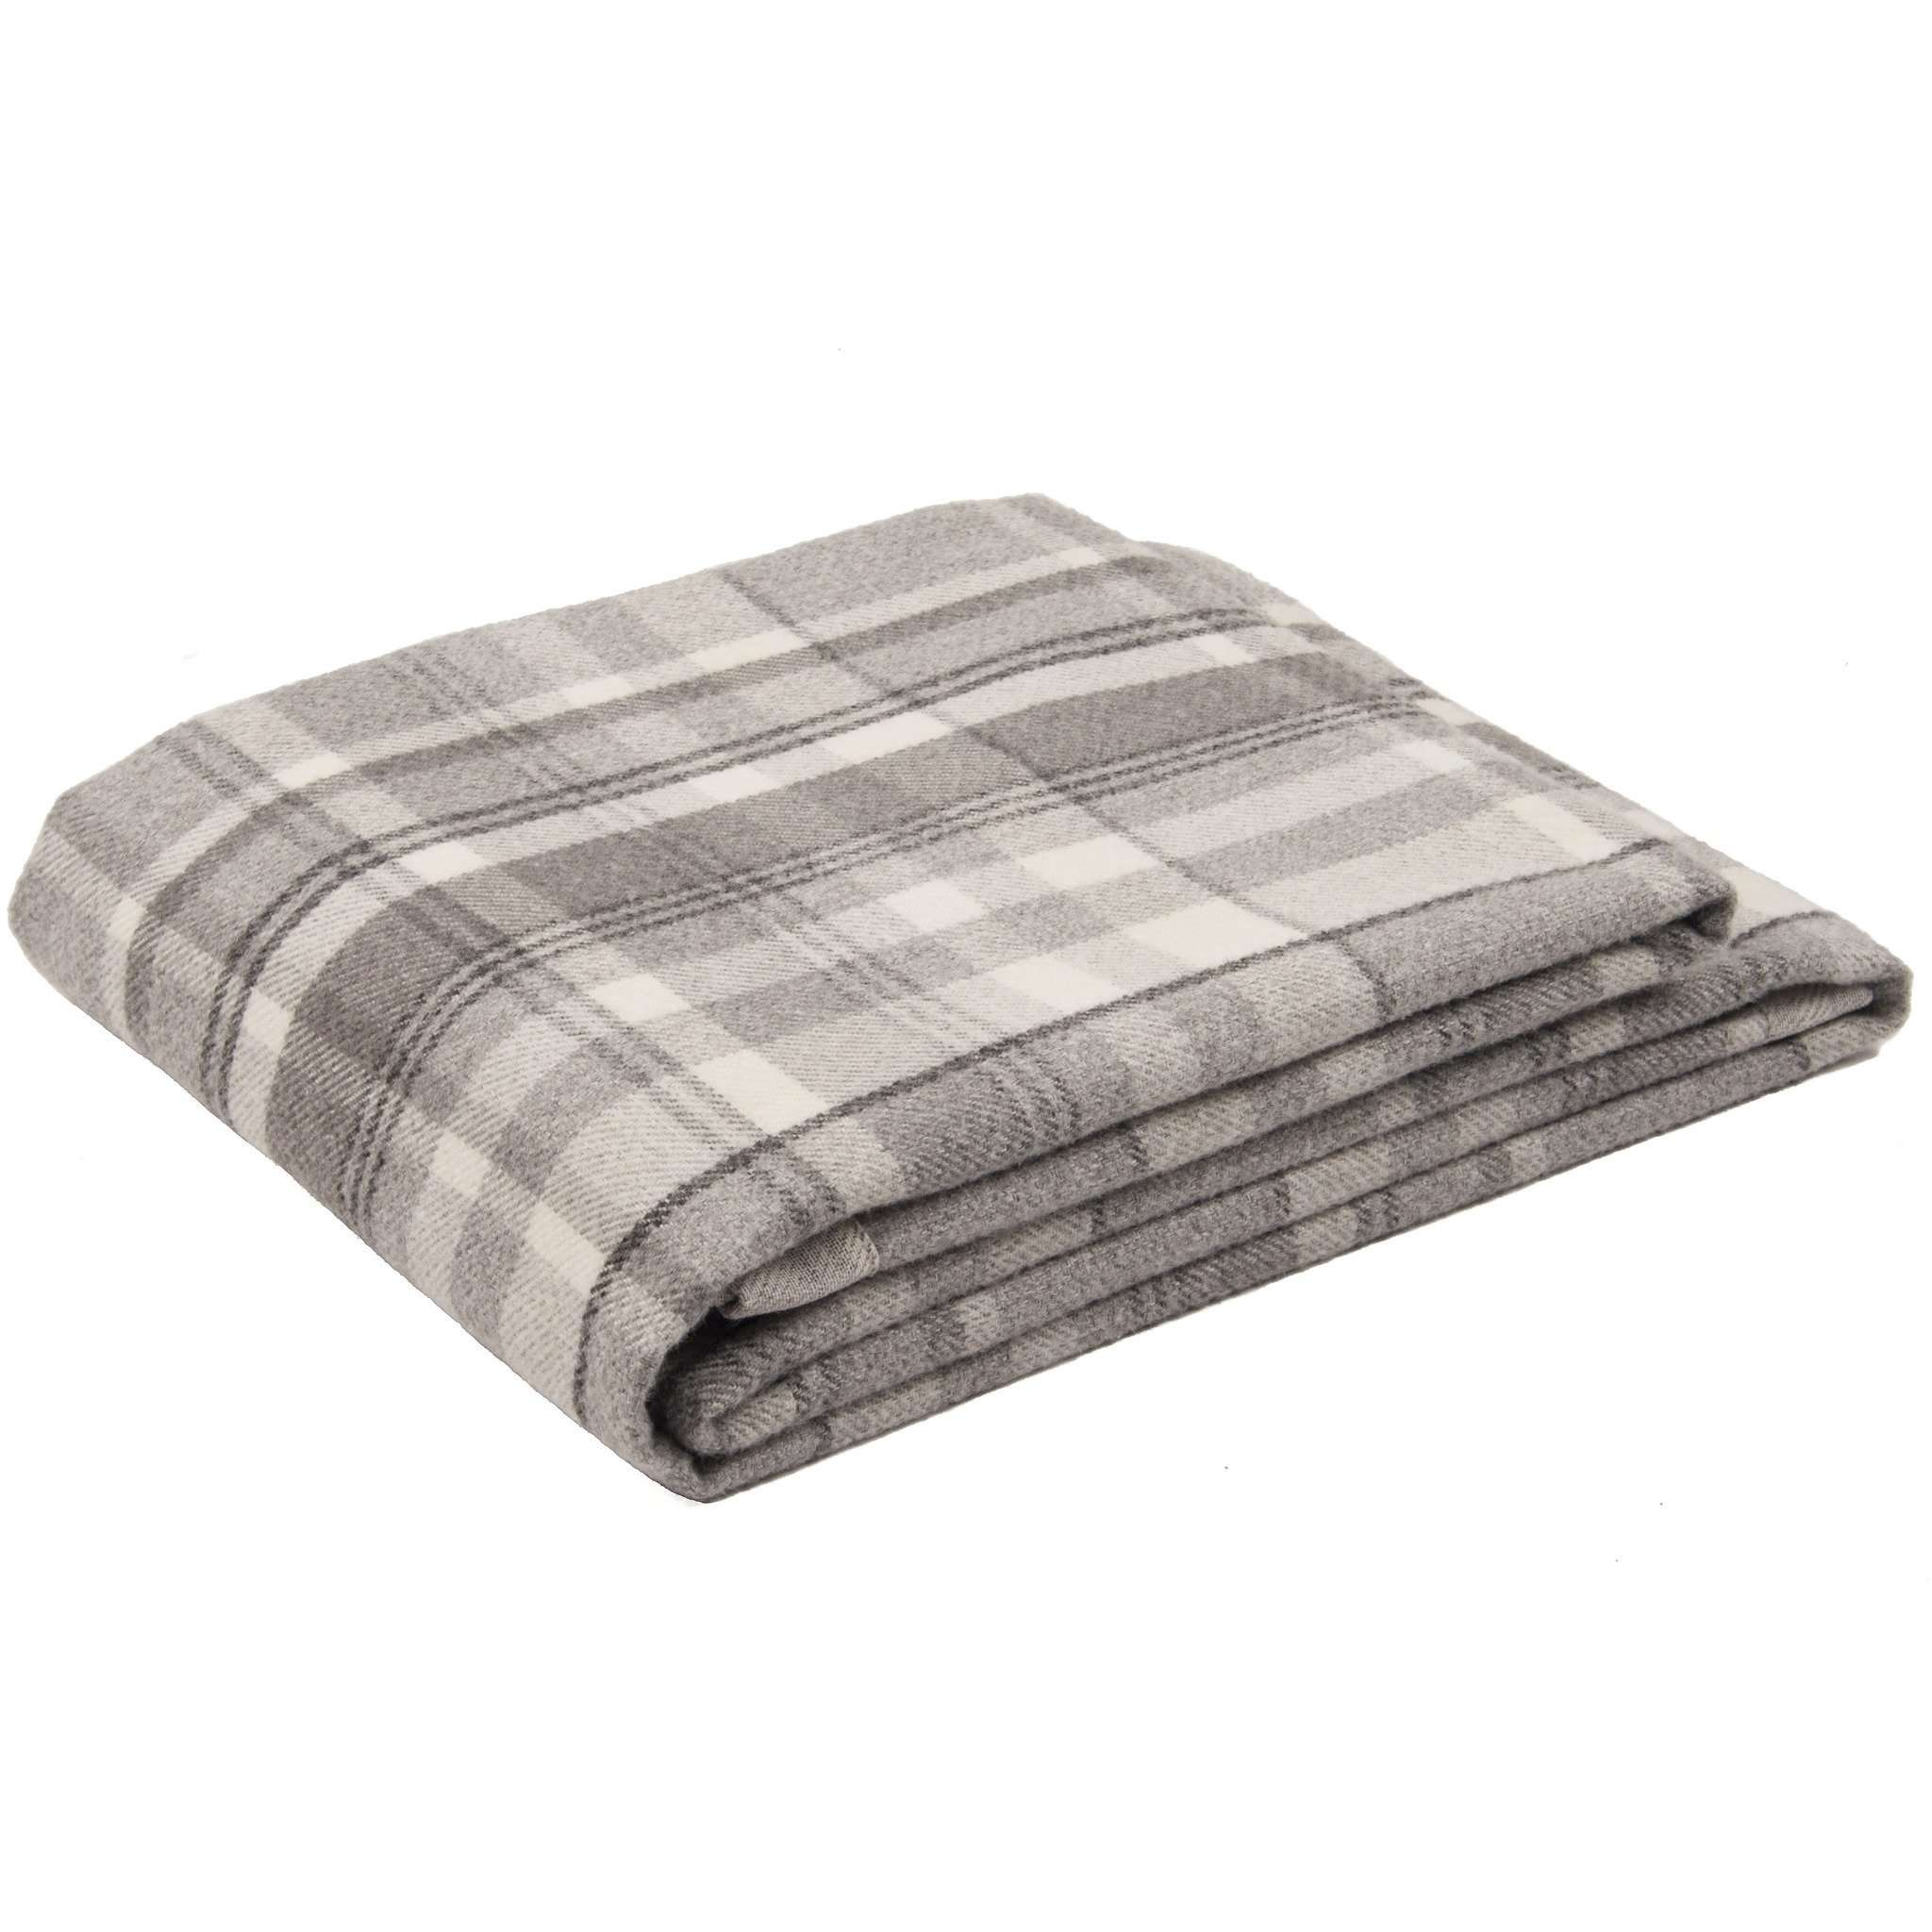 McAlister Textiles Heritage Charcoal Grey Tartan Bedding Set Bedding Set